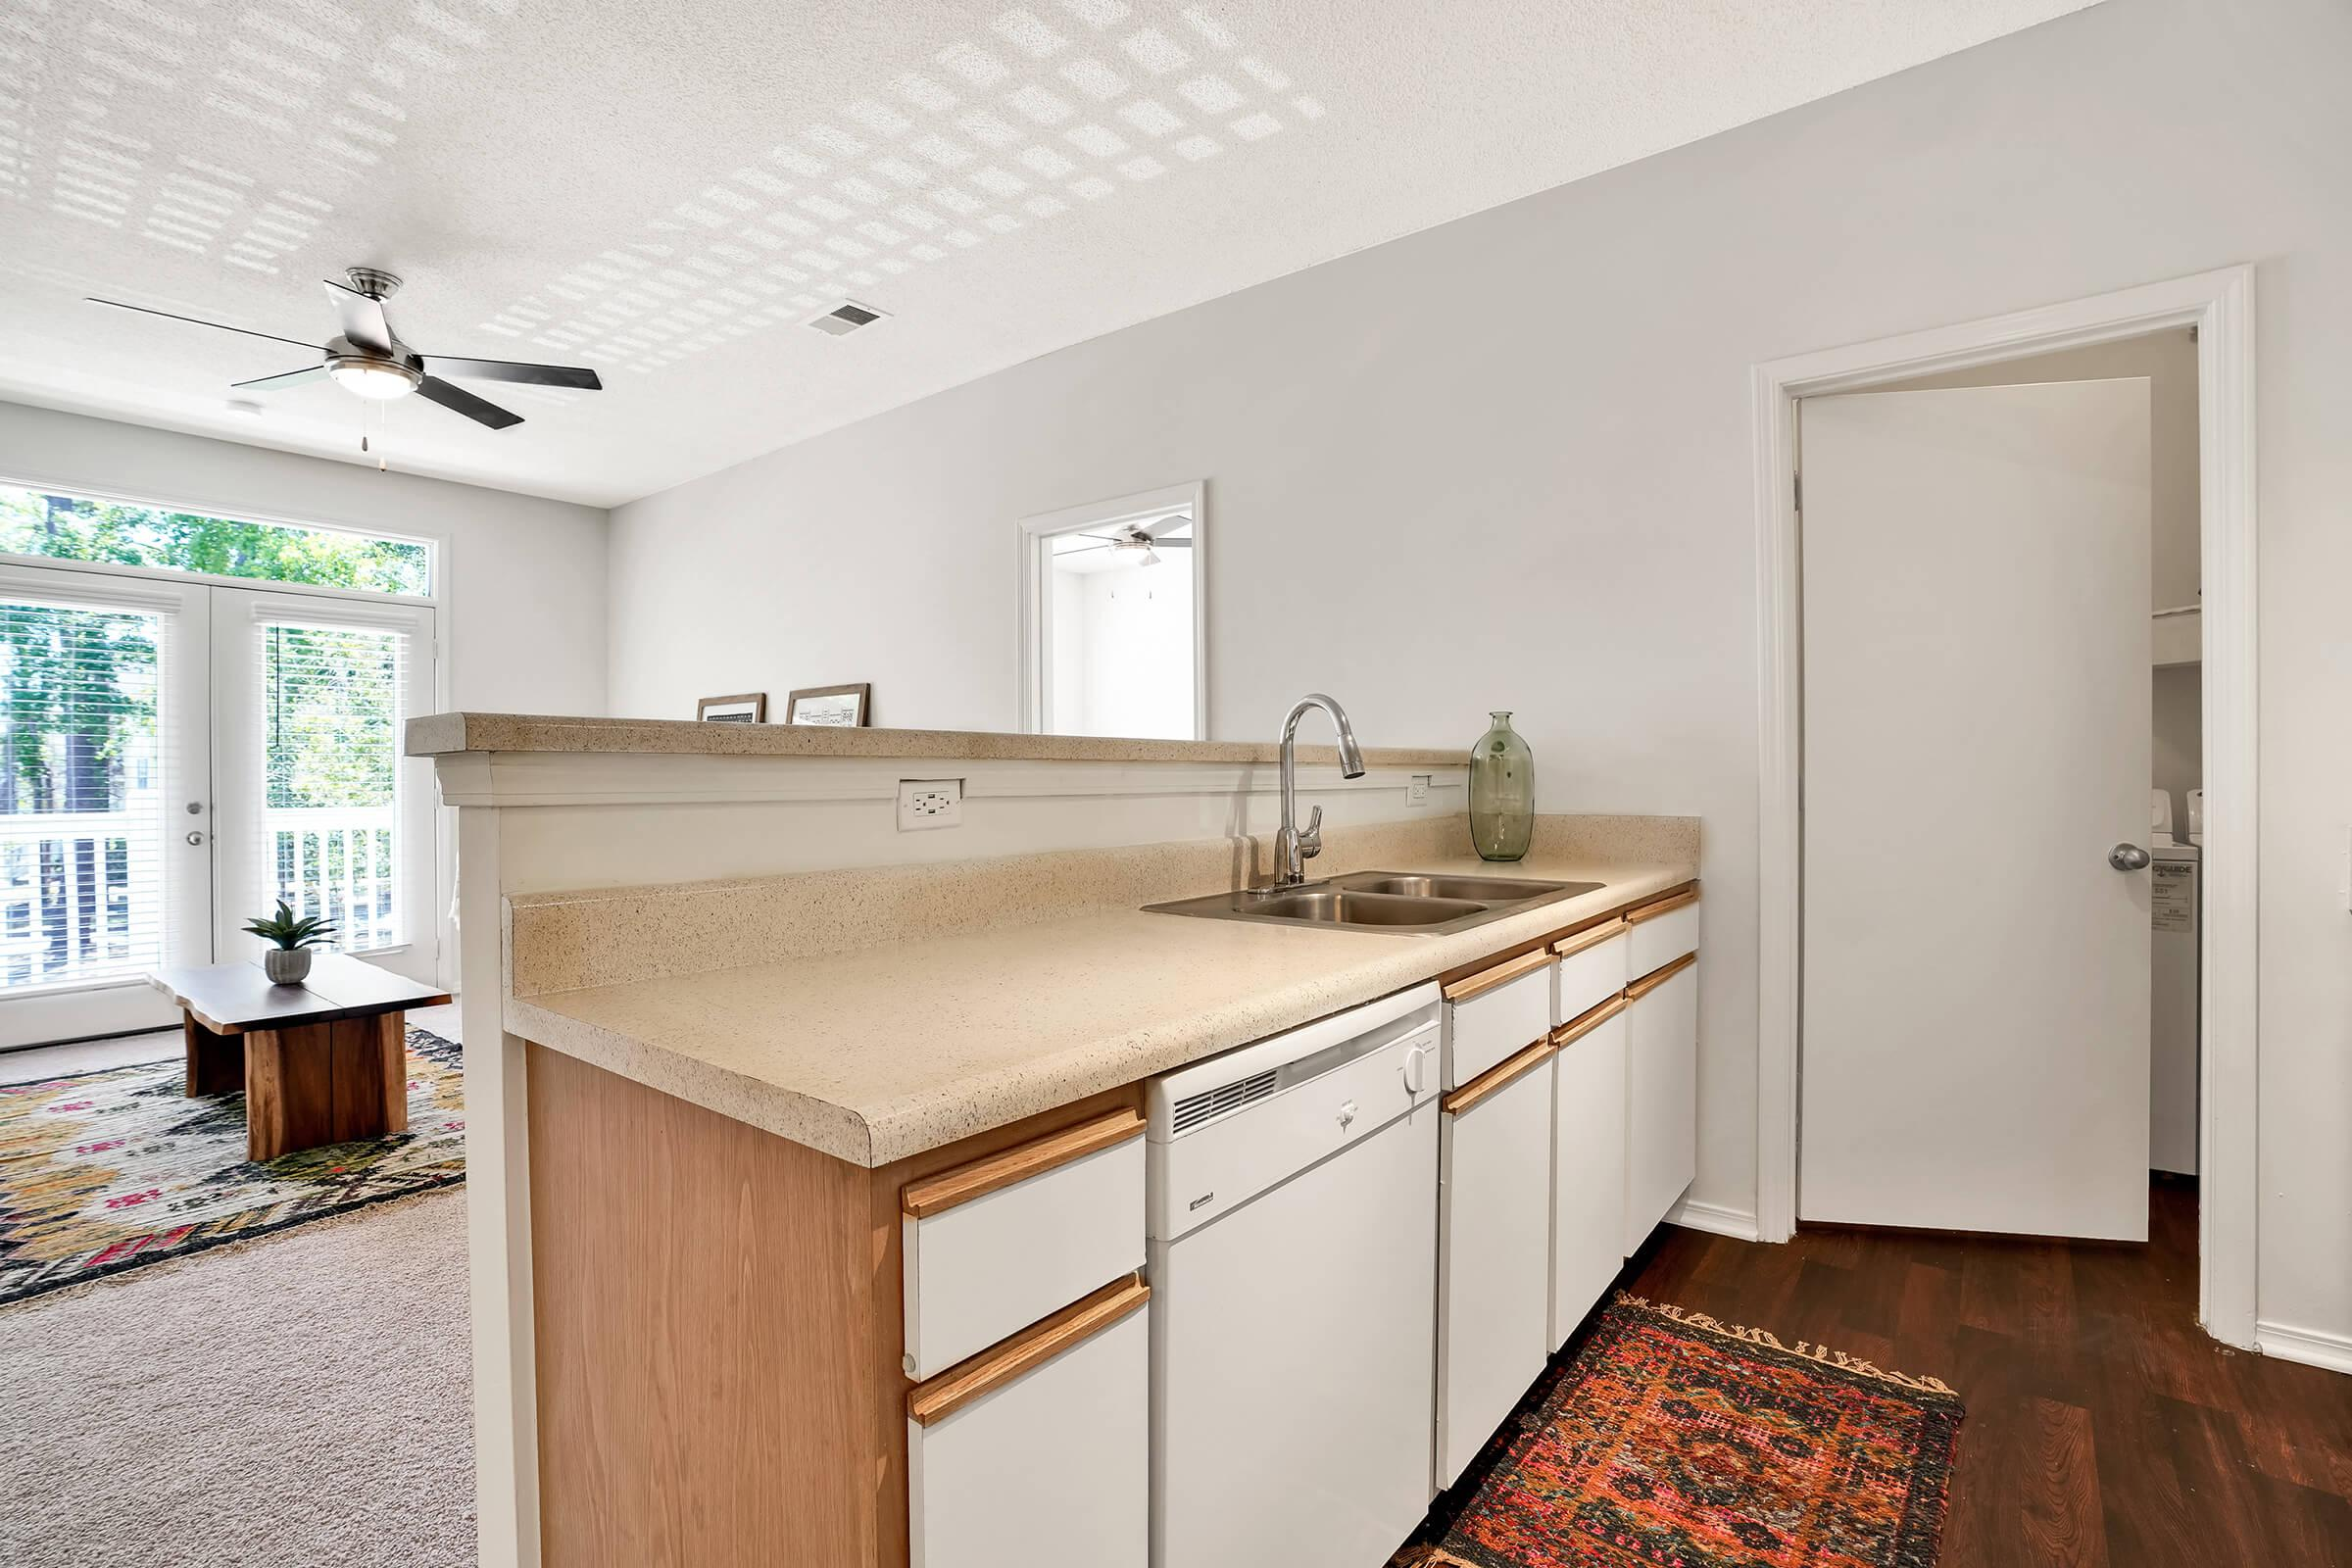 a kitchen with a sink and a mirror in a room